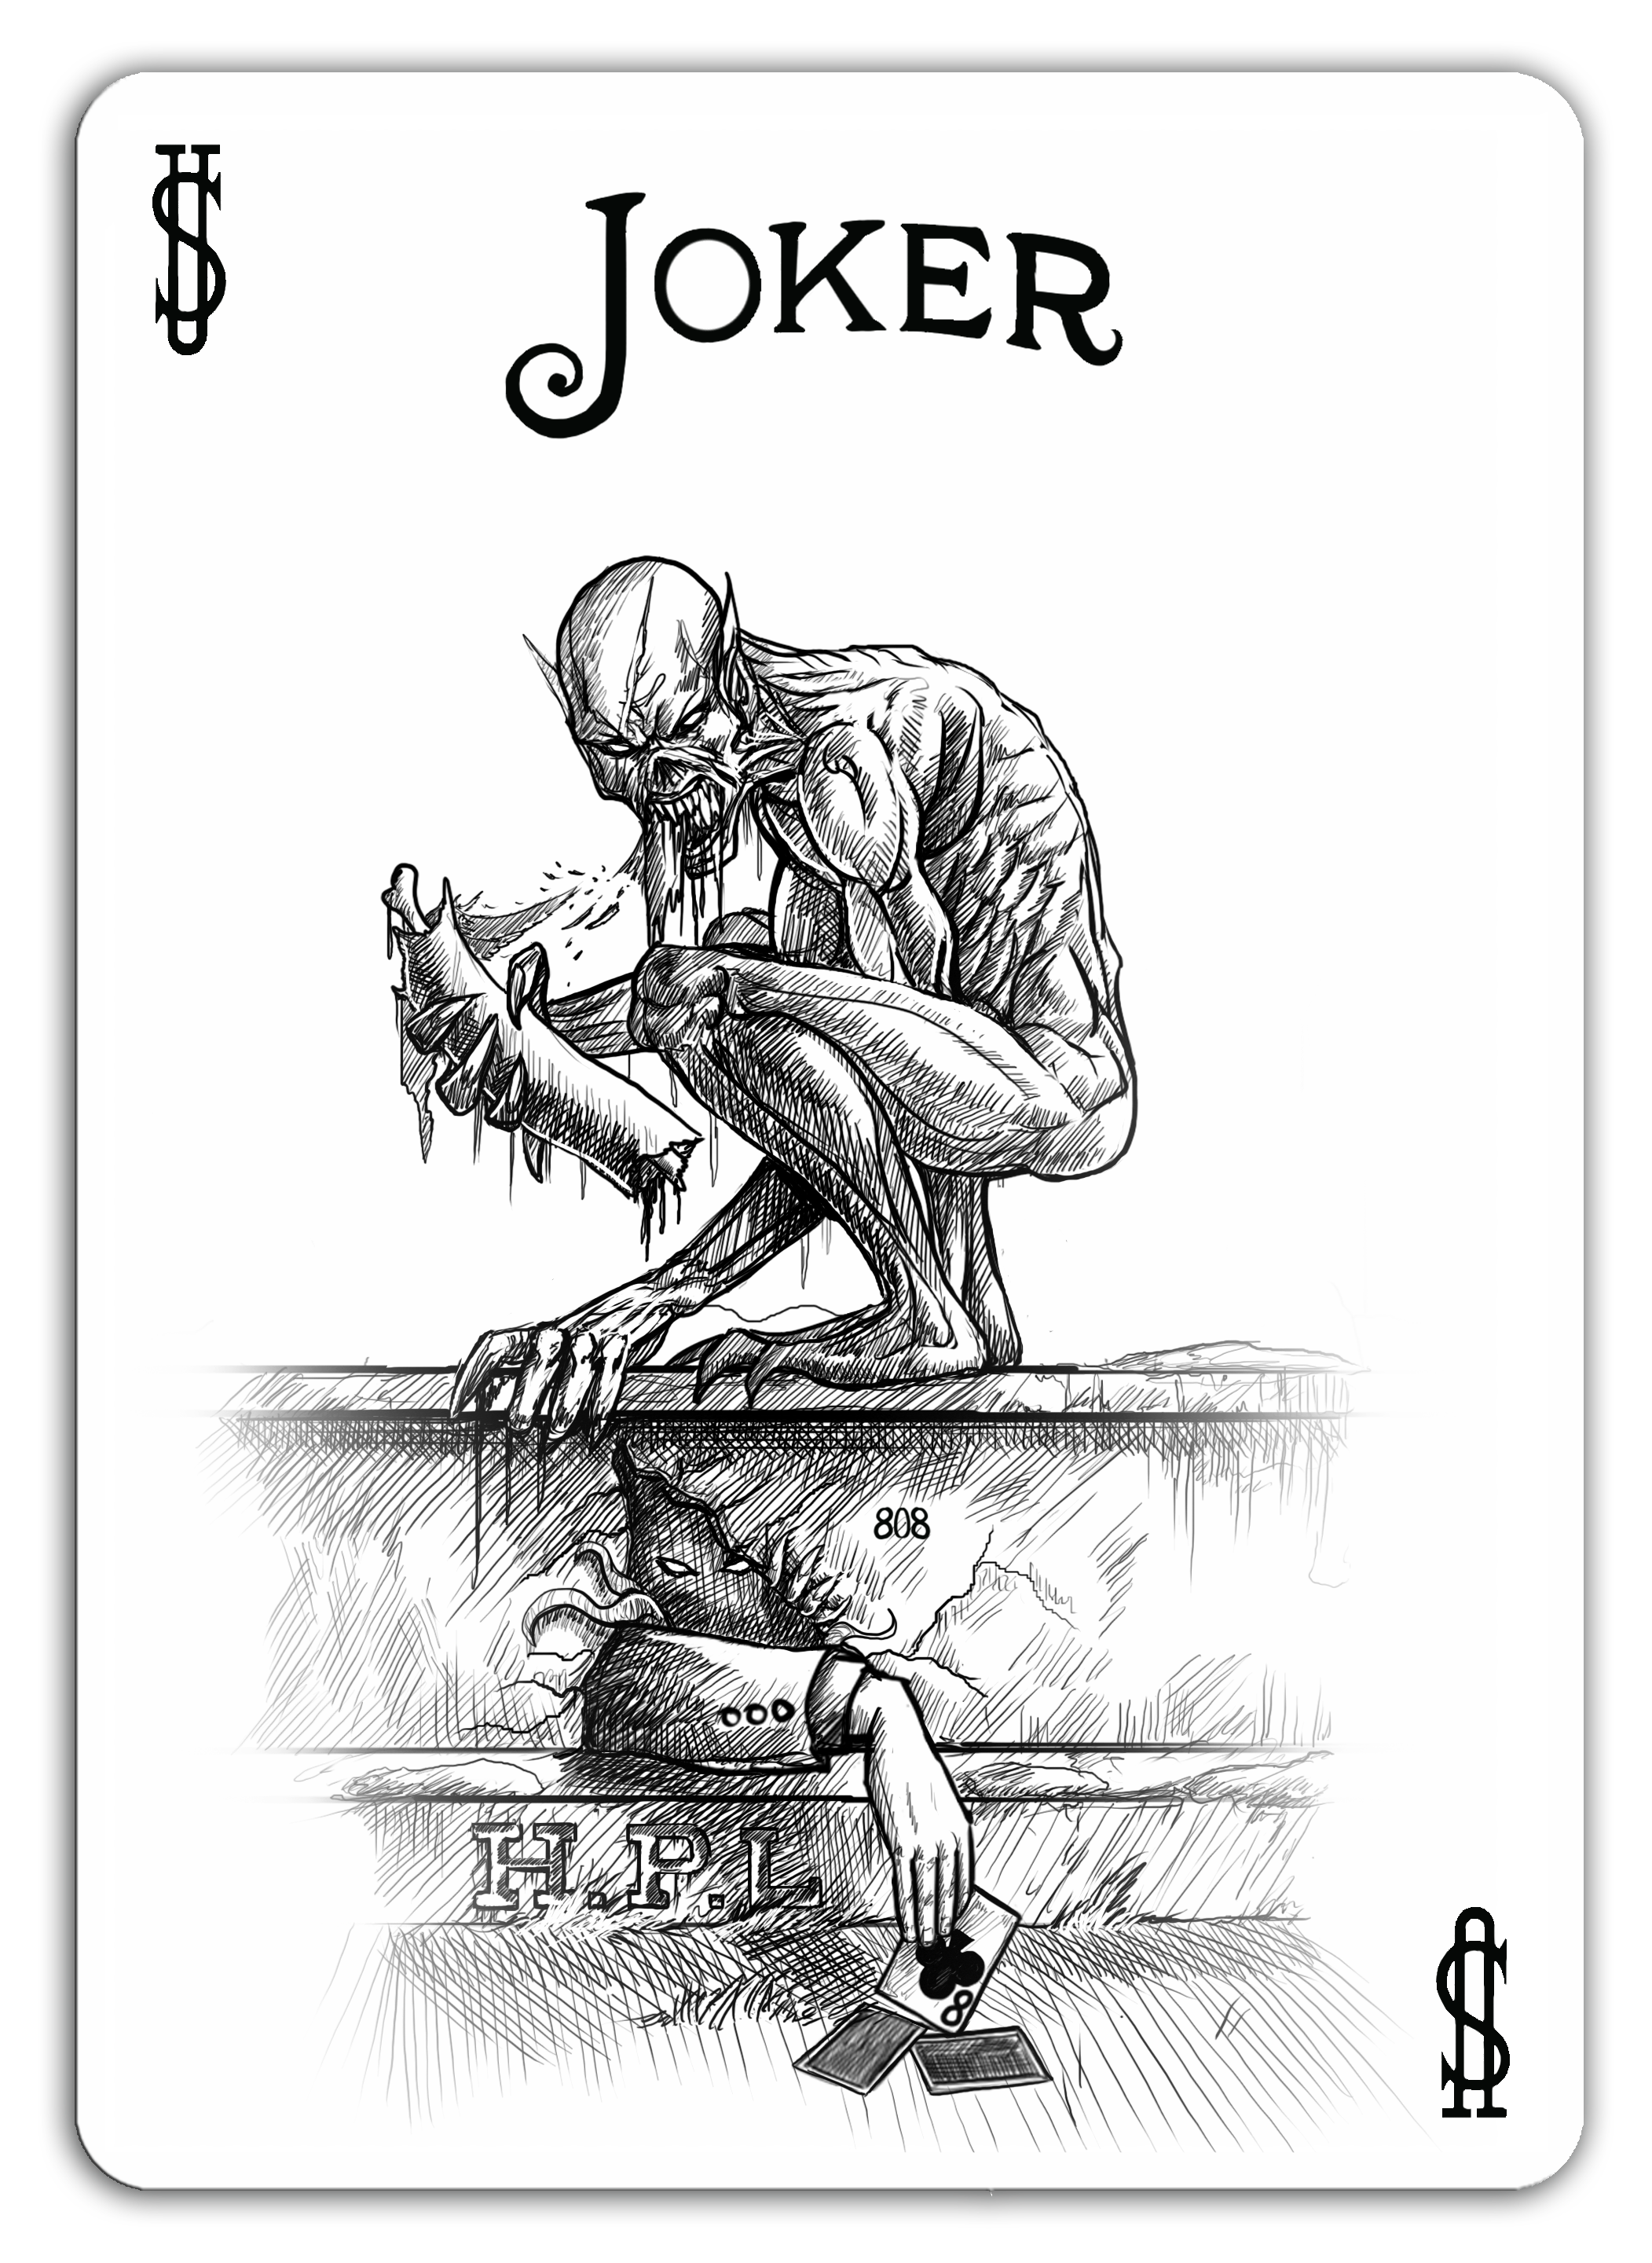 Joker2 Png 2103 2880 Joker Playing Card Joker Card Tattoo Bicycle Playing Cards